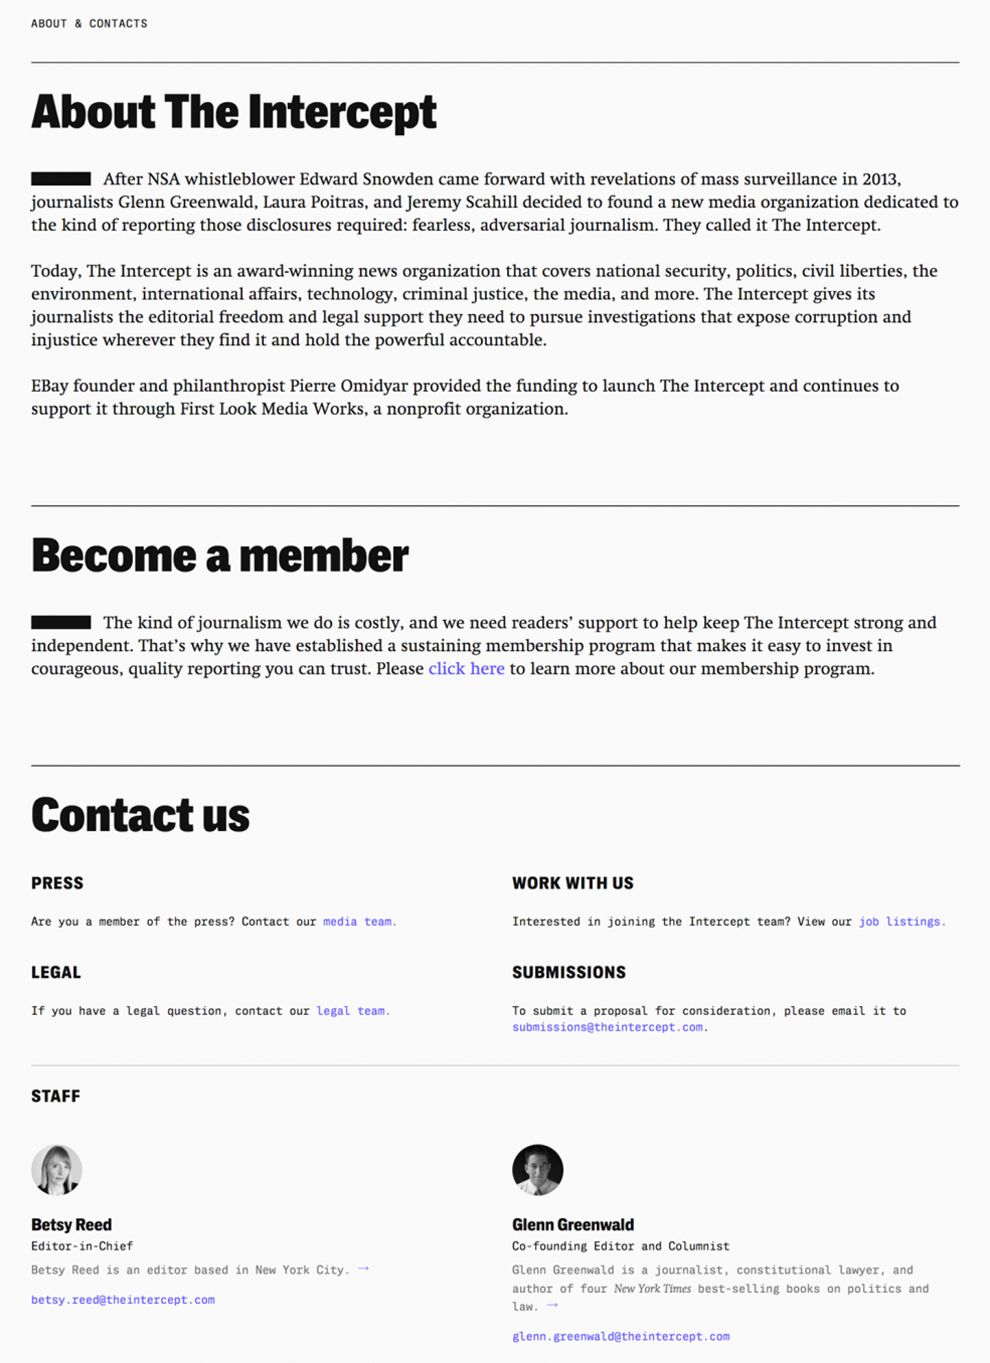 The Intercept Minimal About Page